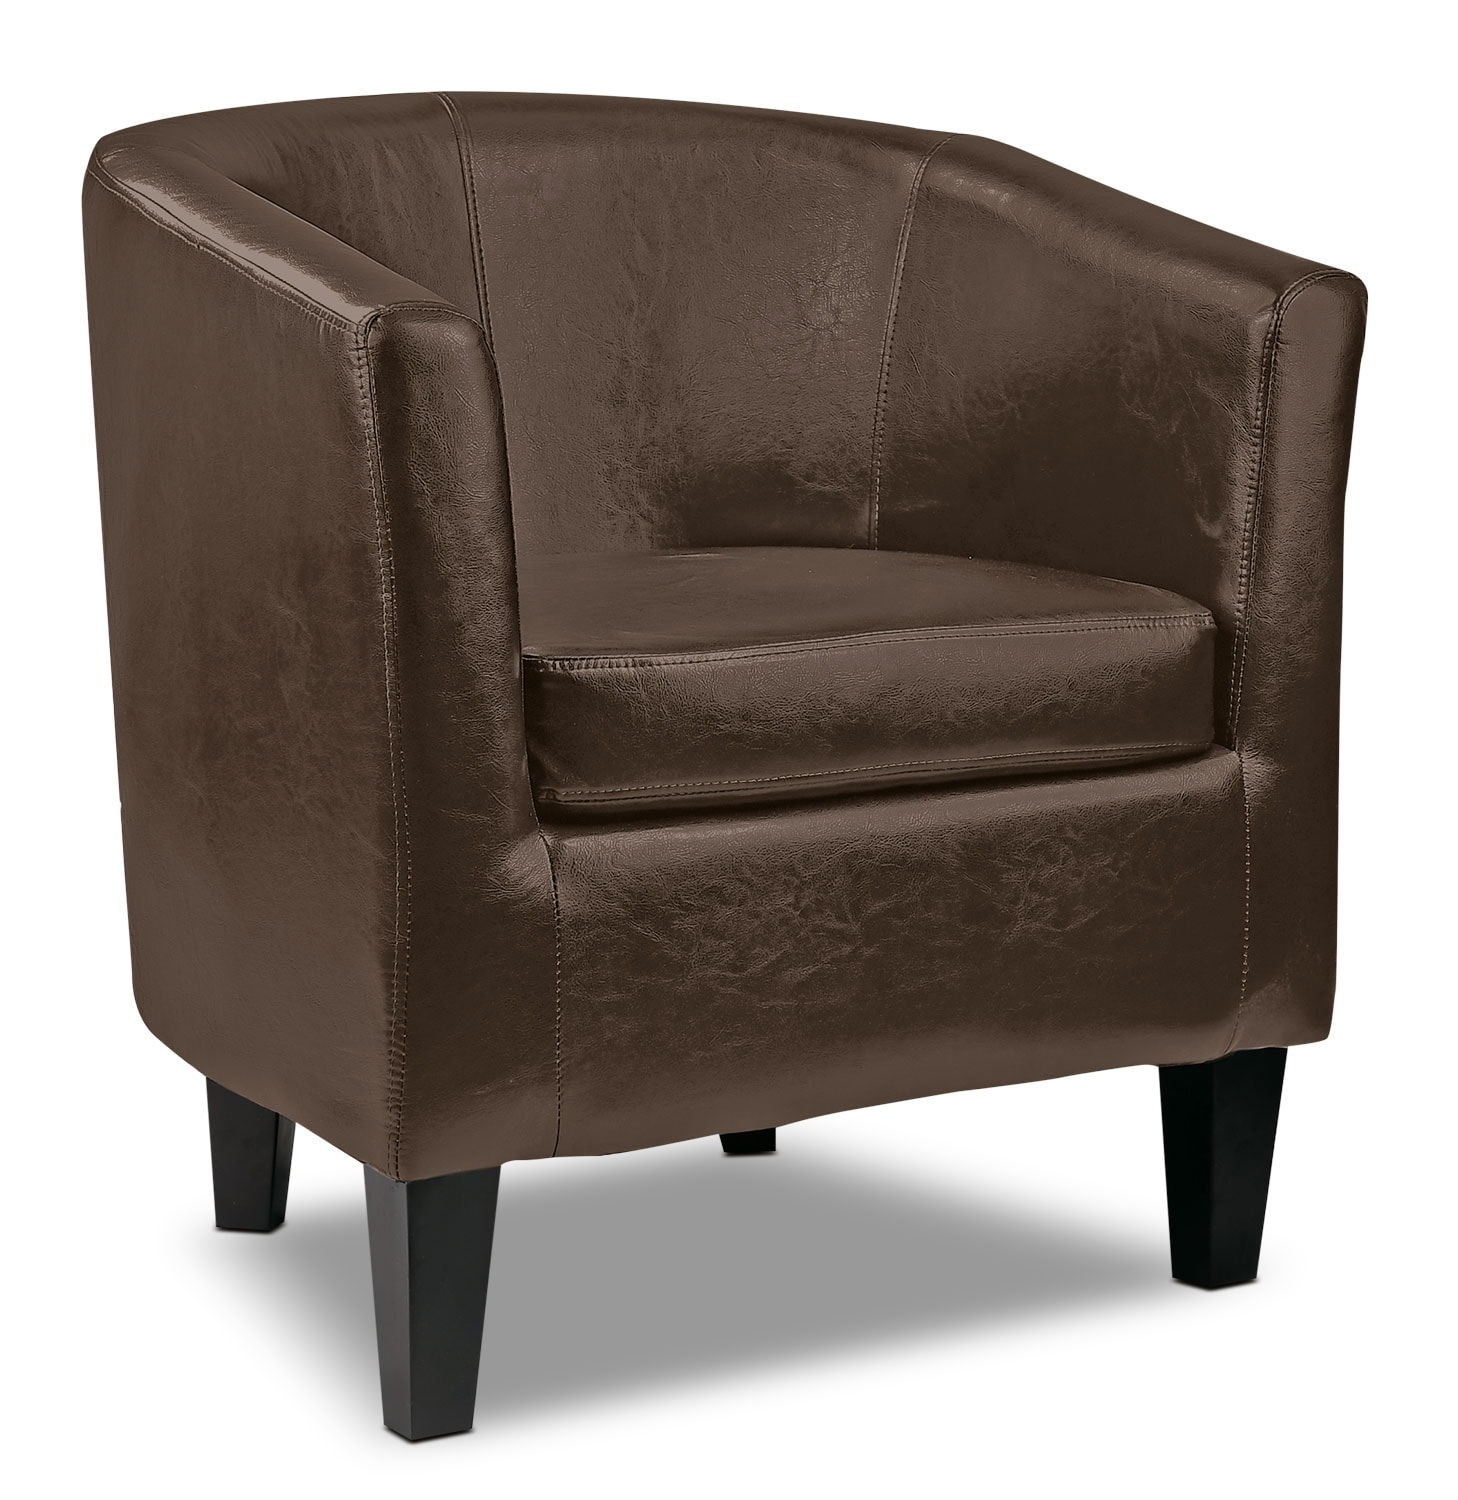 LAD Bonded Leather Accent Club Chair – Dark Brown